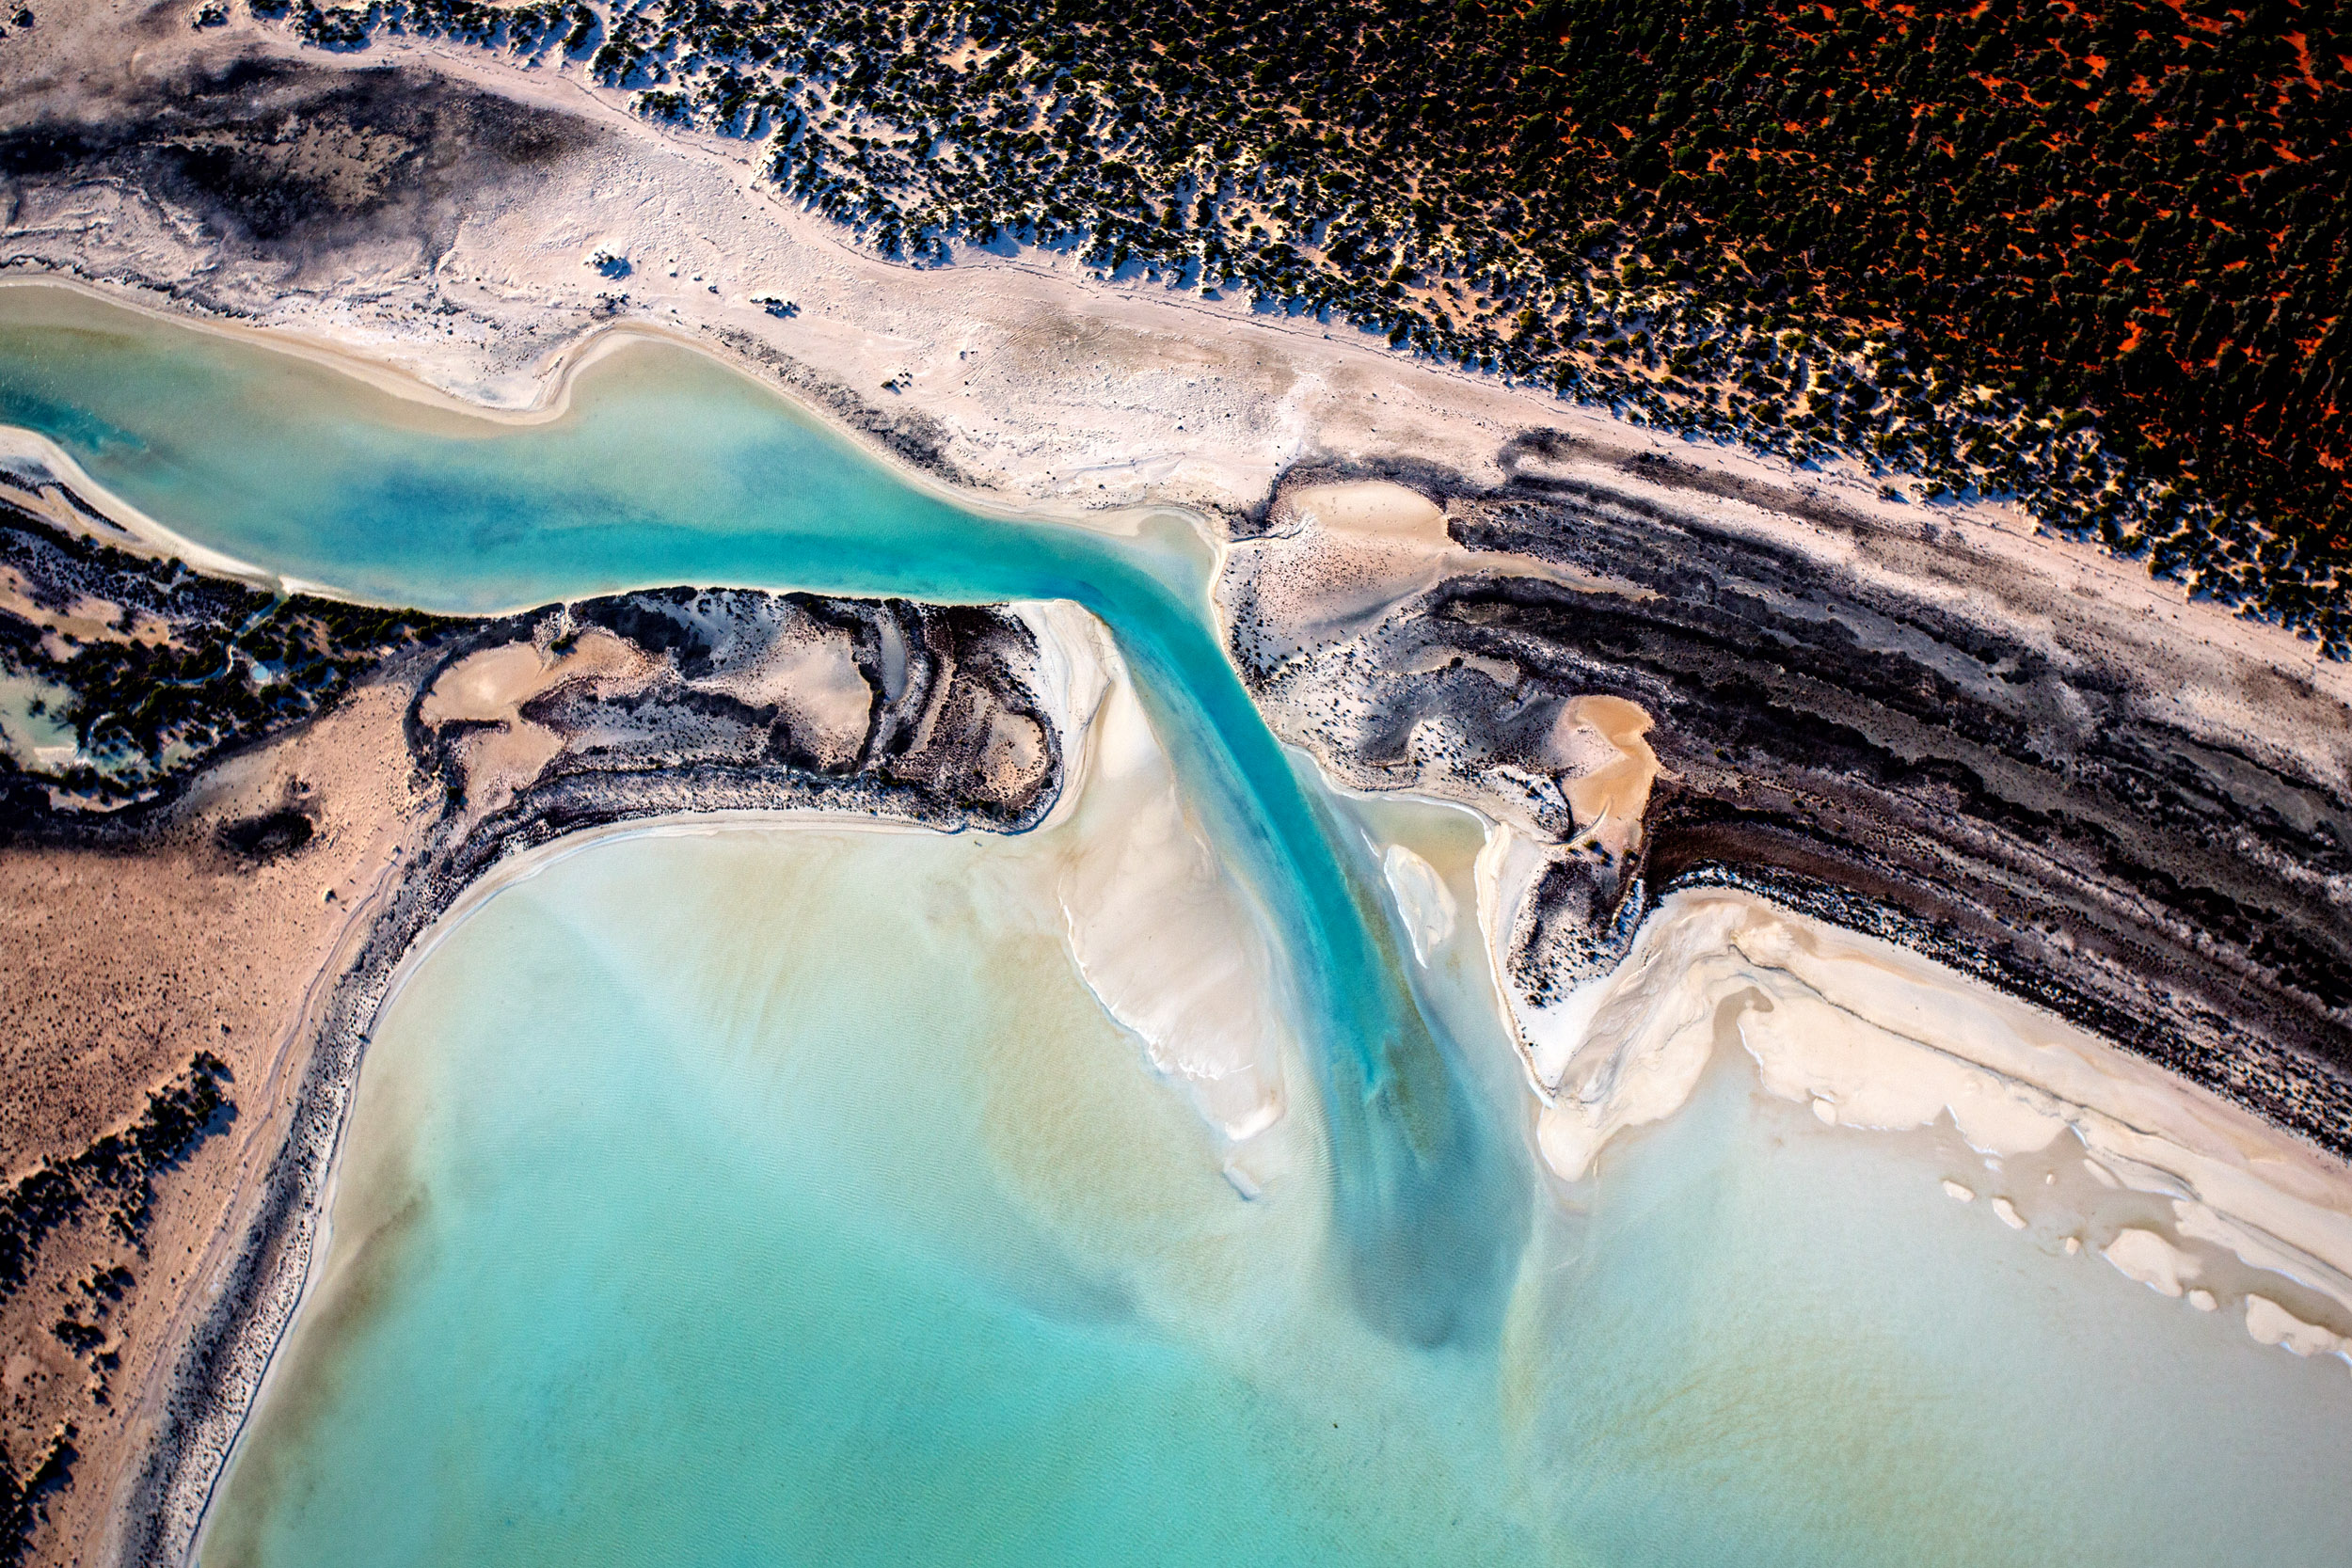 shark-bay-aerials-photographed-from-plane.jpg